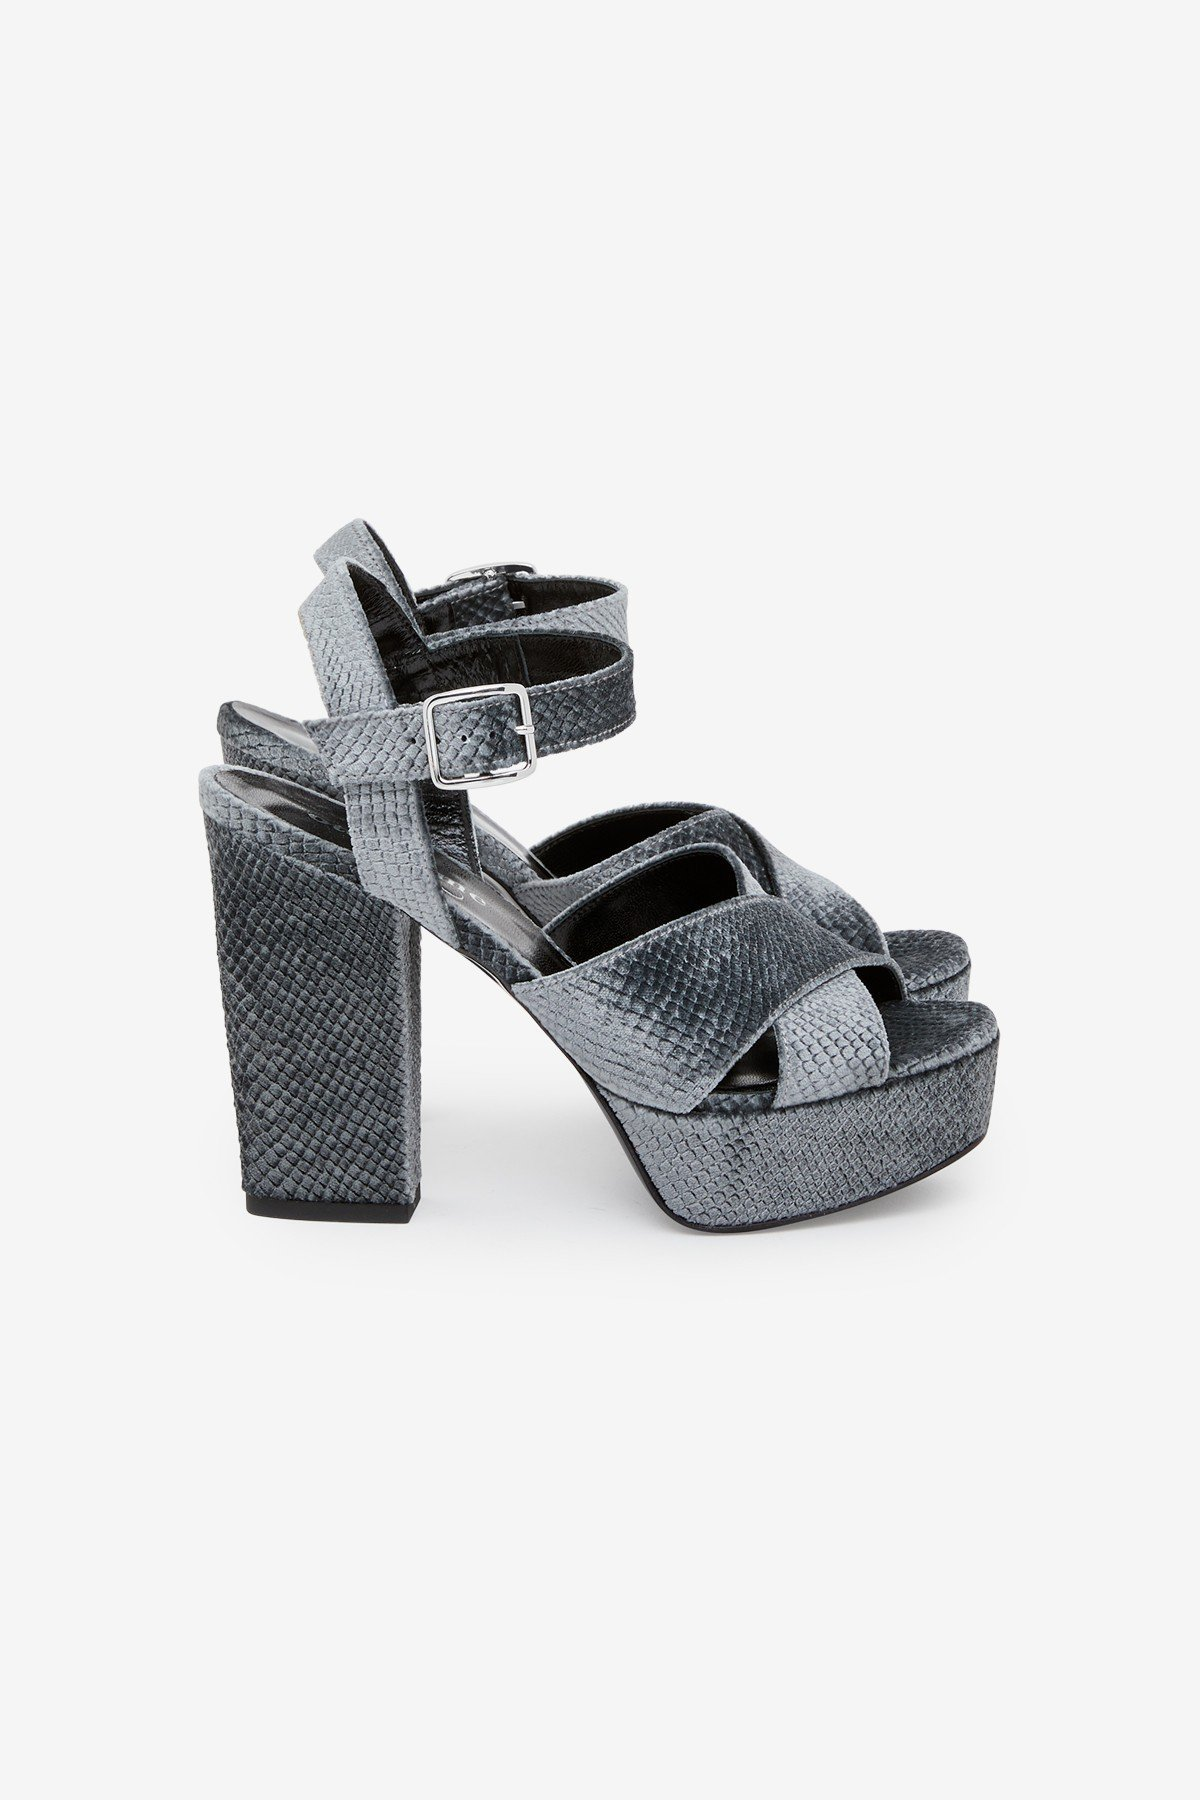 Printed leather sandals with python effect